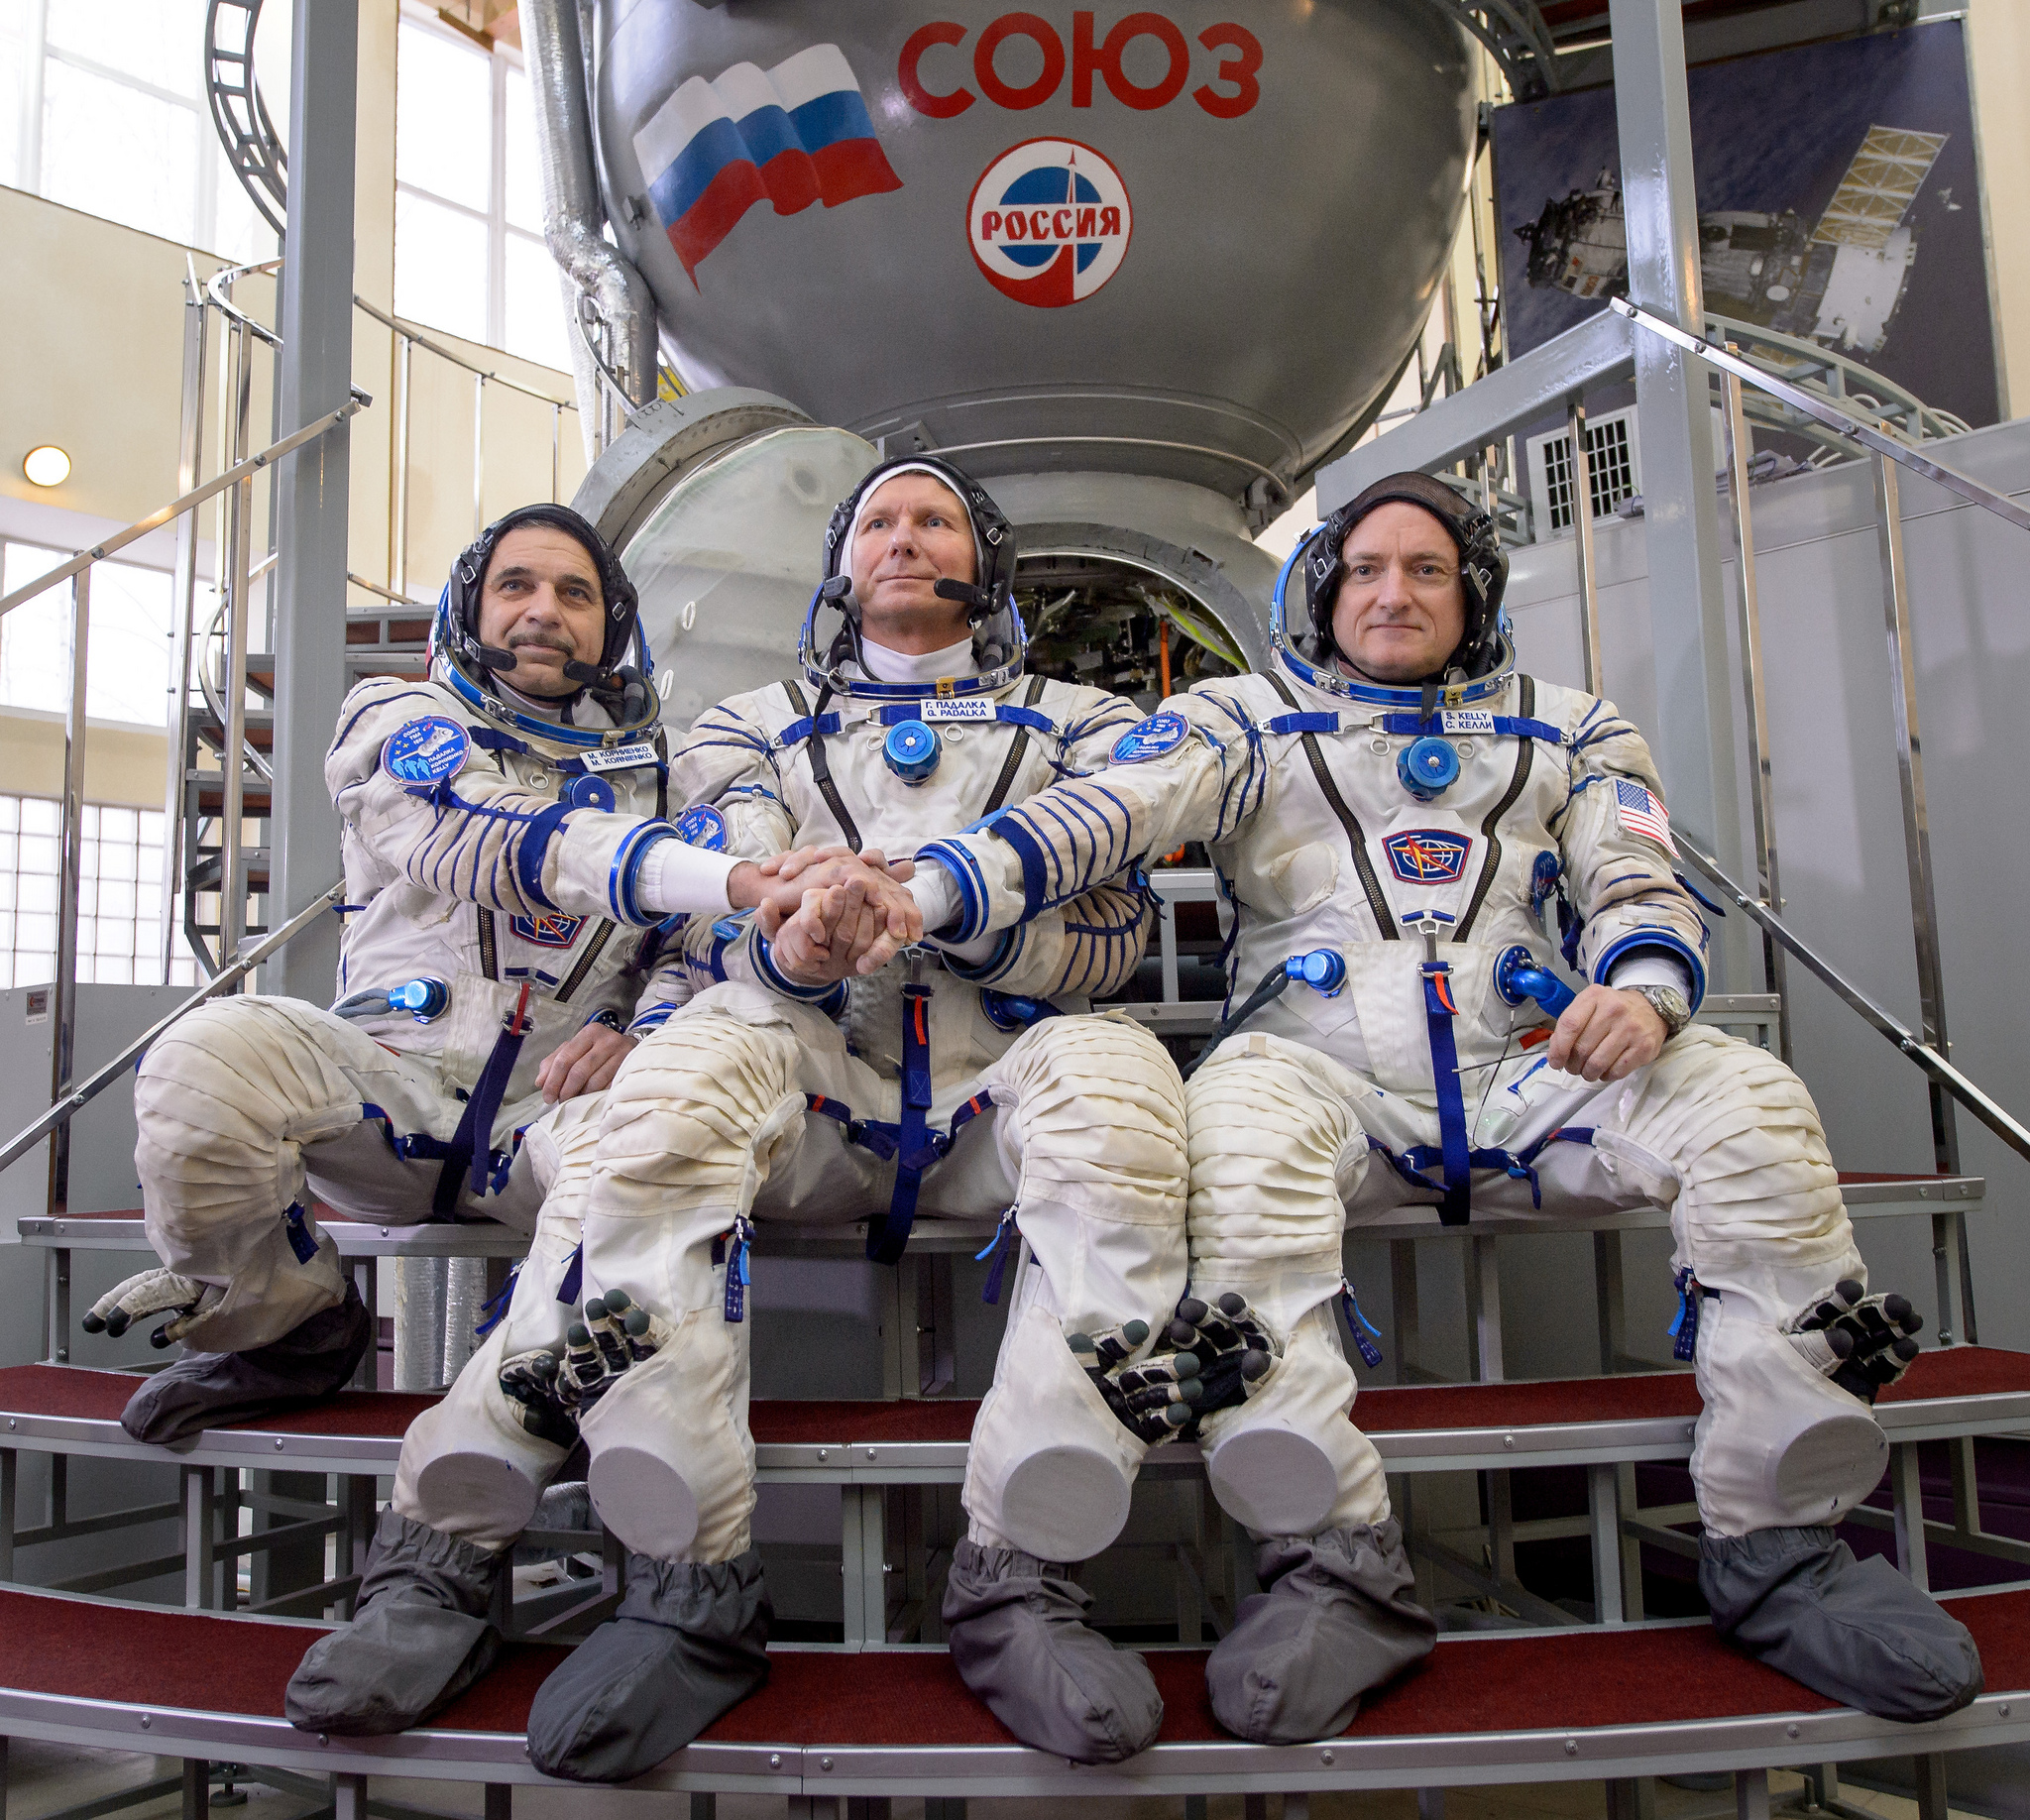 Expedition 43 Russian cosmonaut Mikhail Kornienko of the Russian Federal Space Agency (Roscosmos), left, Russian cosmonaut Gennady Padalka of Roscosmos, center, and NASA Astronaut Scott Kelly pose for a photograph outside a Soyuz simulator during the second day of qualification exams, Thursday, March 5, 2015 at the Gagarin Cosmonaut Training Center (GCTC) in Star City, Russia